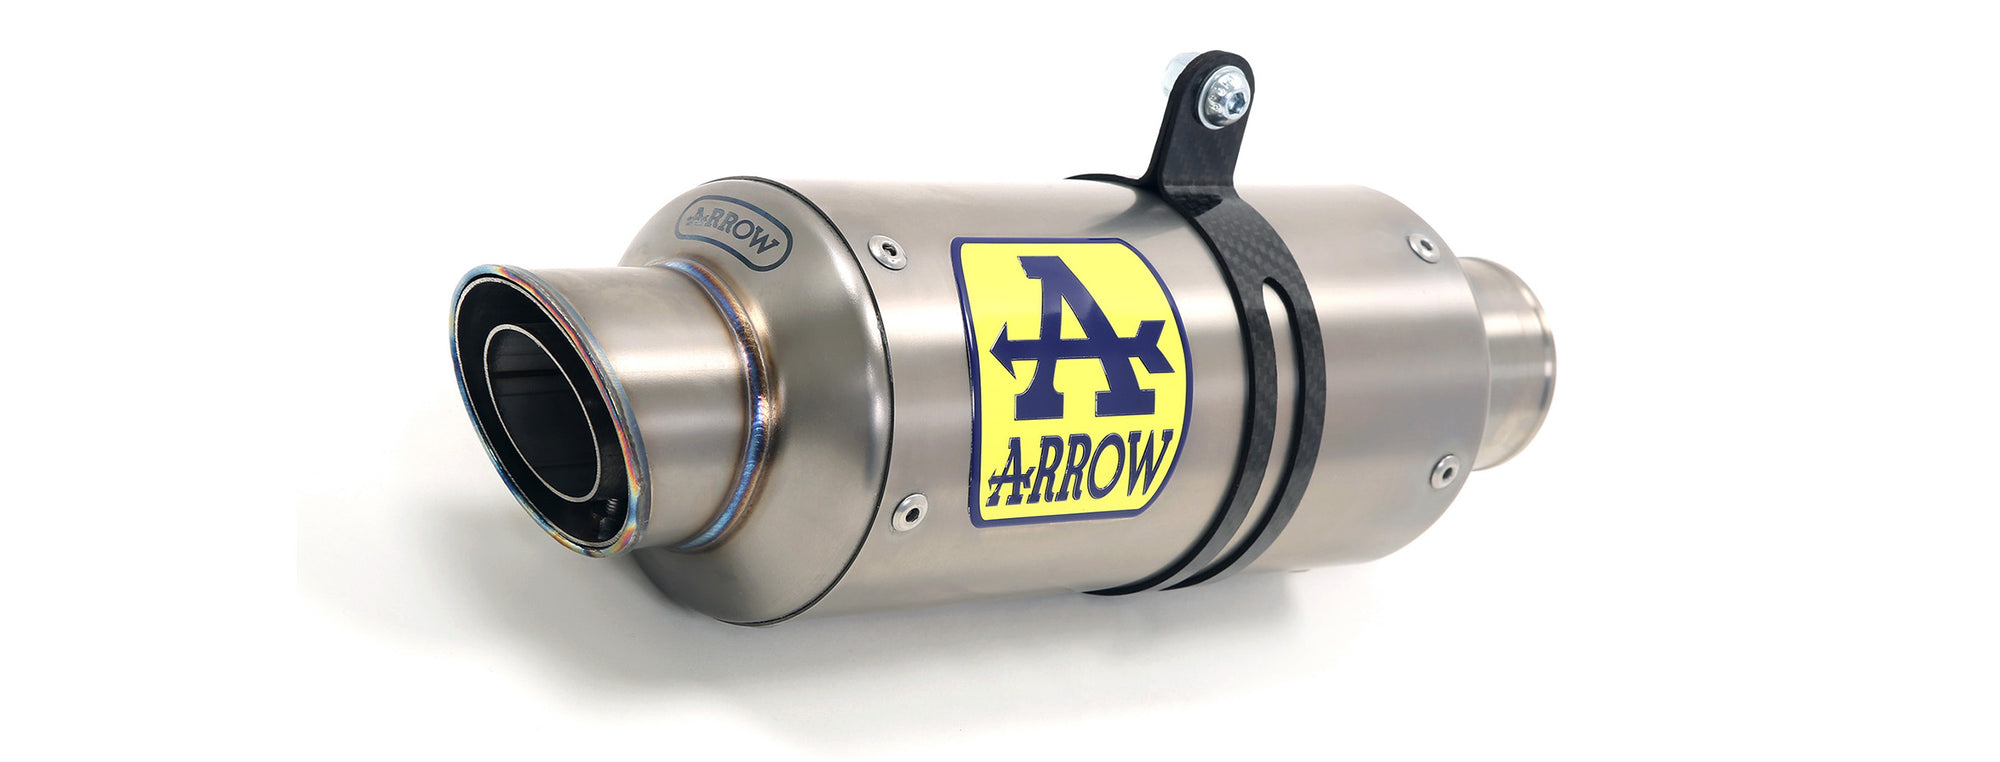 GP2 Exhaust - Kawasaki, Exhaust Silencer, Arrow Exhausts - Race and Trackday Parts